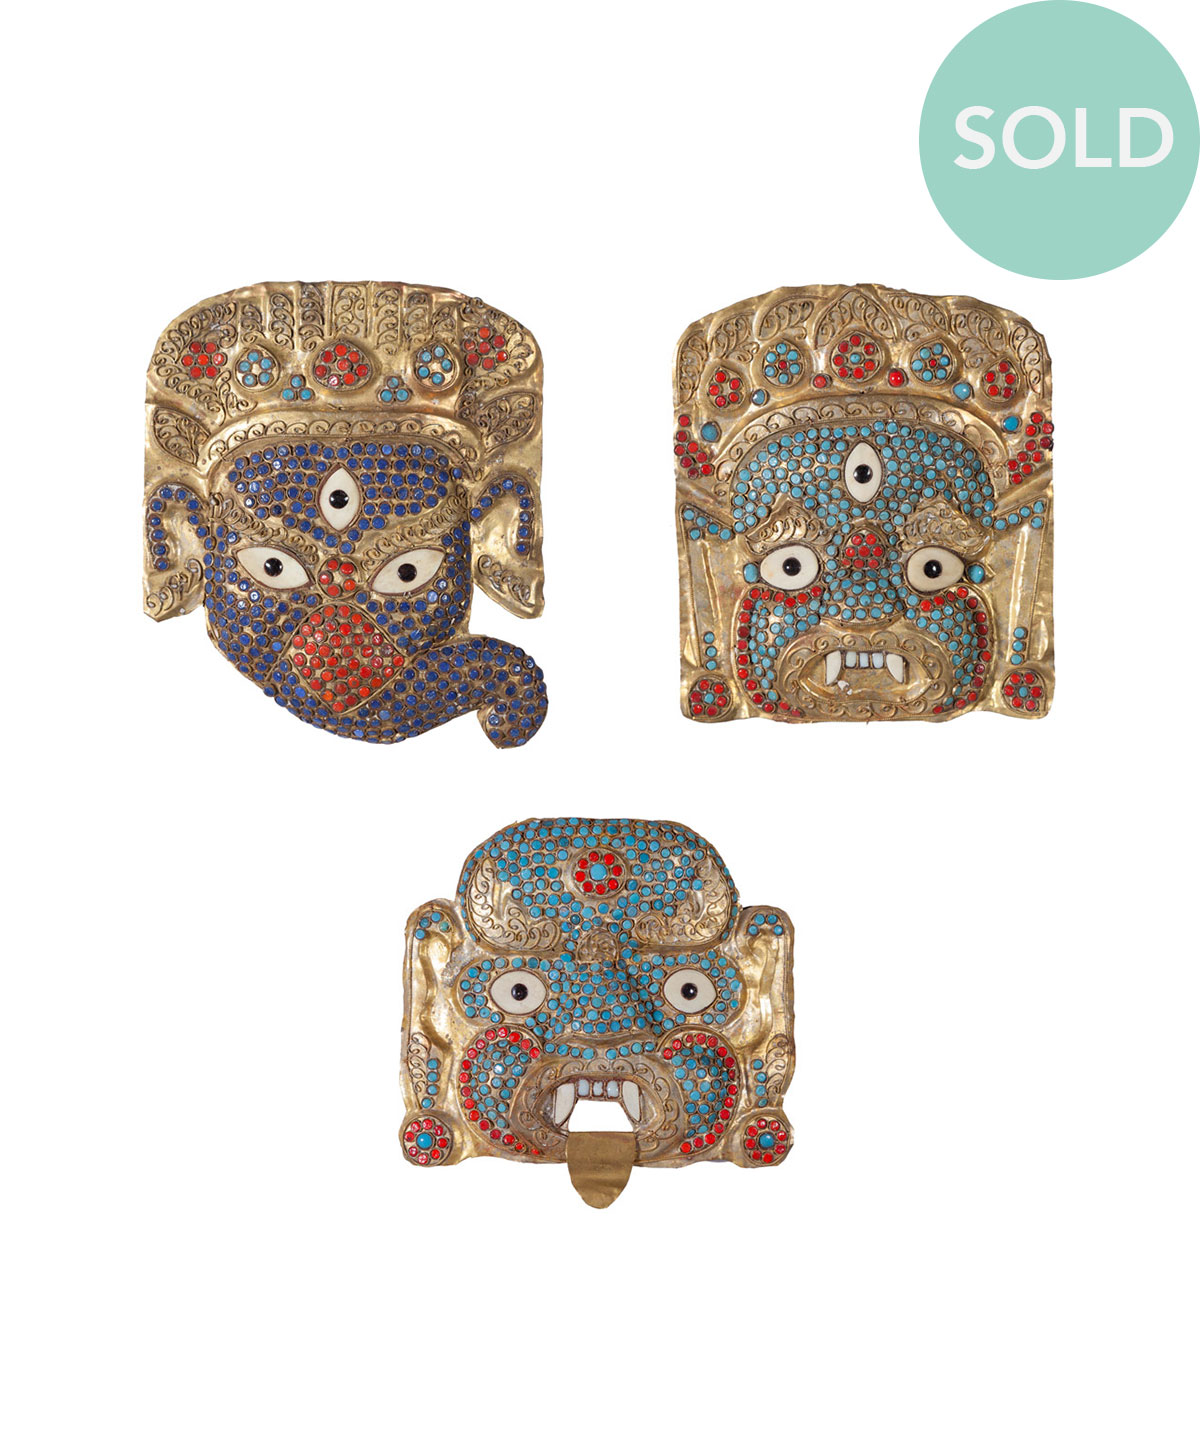 34546_Indonesian_Jeweled_Masks_1